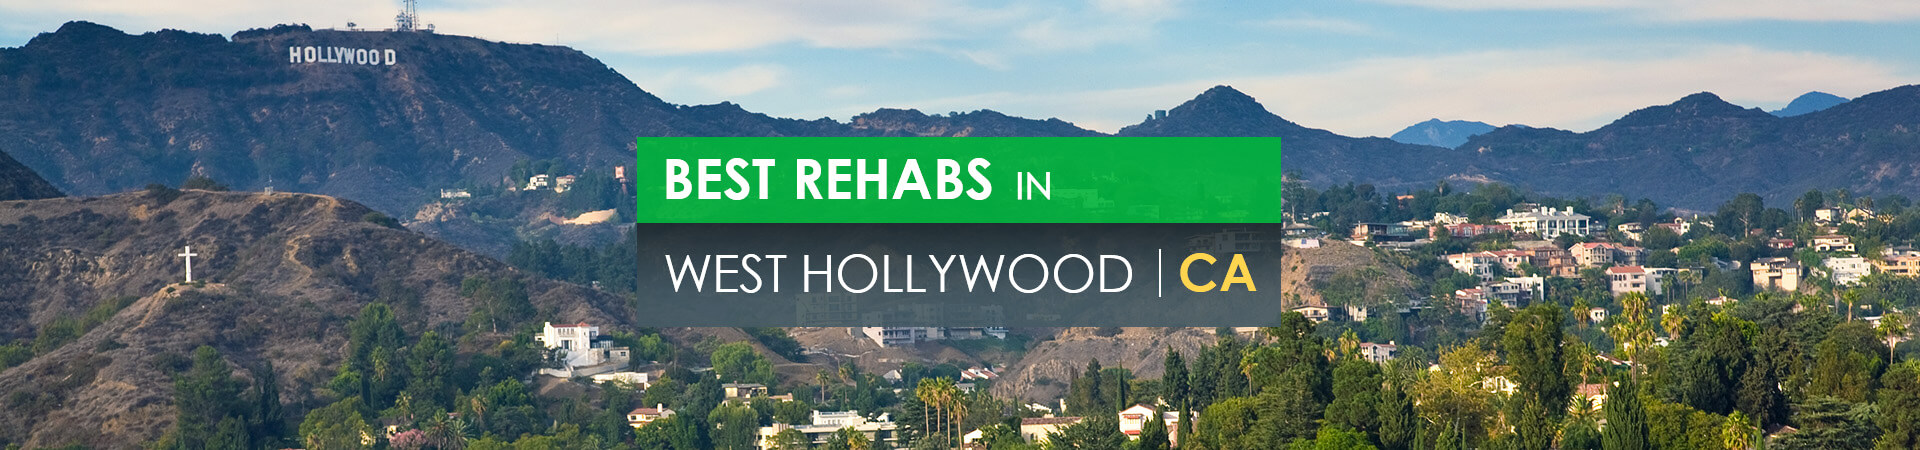 Best rehabs in West Hollywood, CA